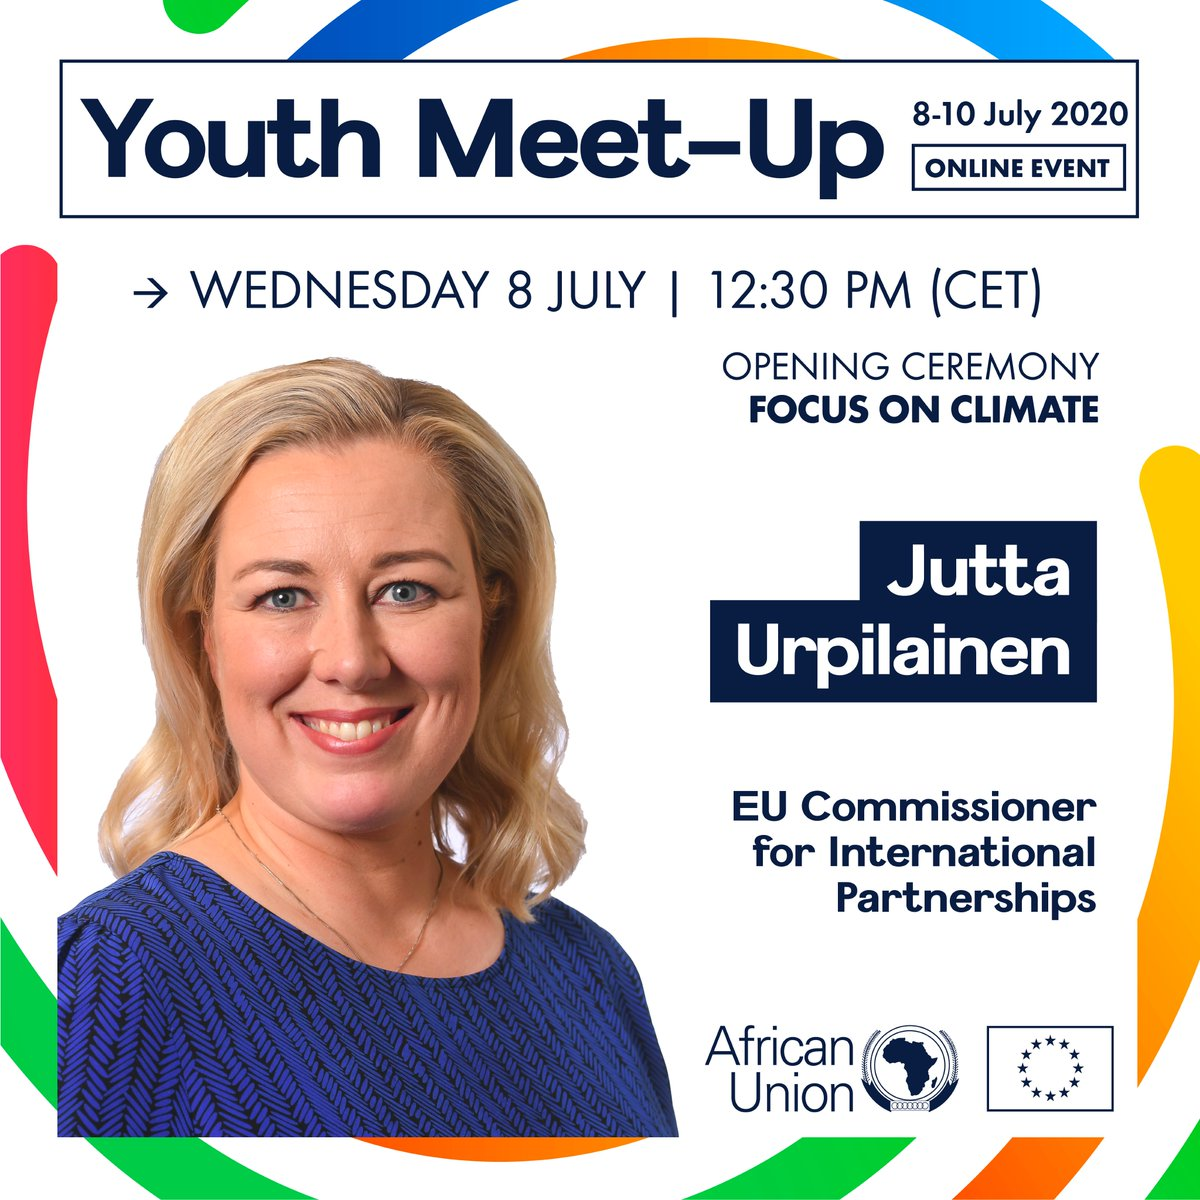 🇪🇺 Commissioner @JuttaUrpilainen will kick-off the #AUEUMeetUp❗   A proud moment before we start 3-days of discussions on #AU #EU cooperation🤝   Are you ready? ⏰We are! ✅ So is the #youth of today who will design the world of tomorrow!  Full programme👉https://t.co/hygLz5wn1l https://t.co/9tKethBhpQ